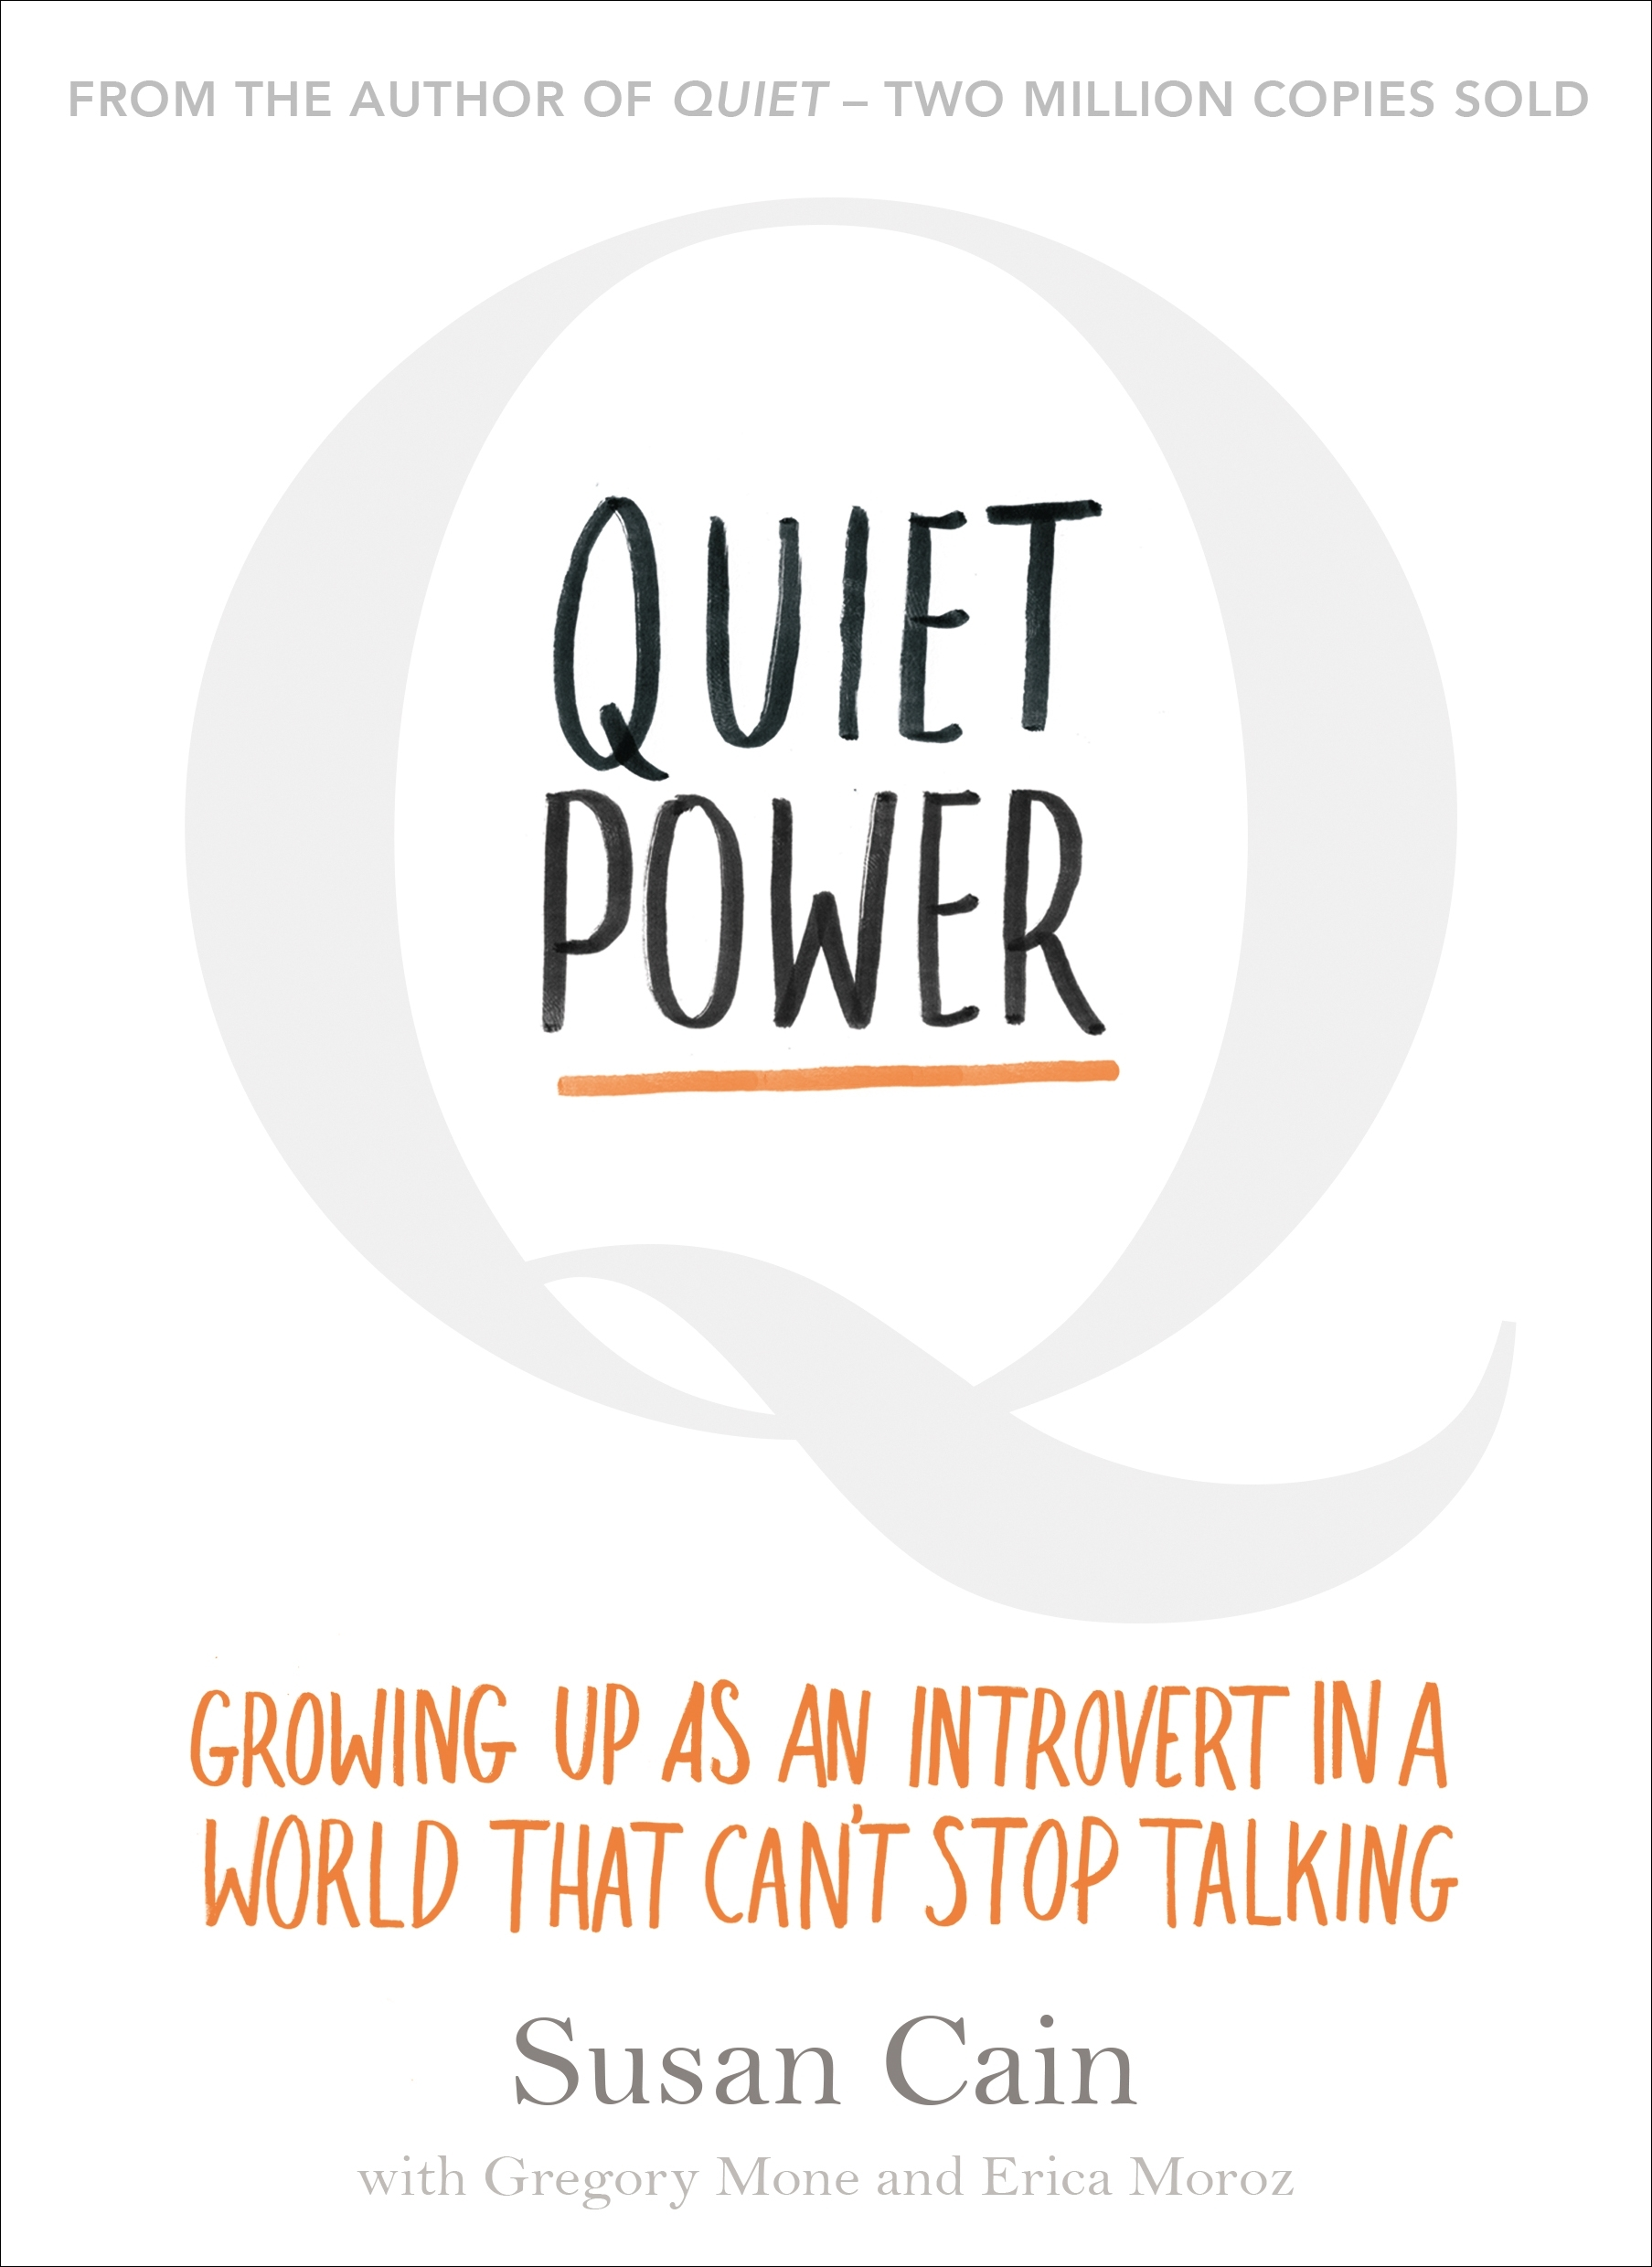 Quiet Power: Growing Up as an Introvert in a World That Can't Stop Talking